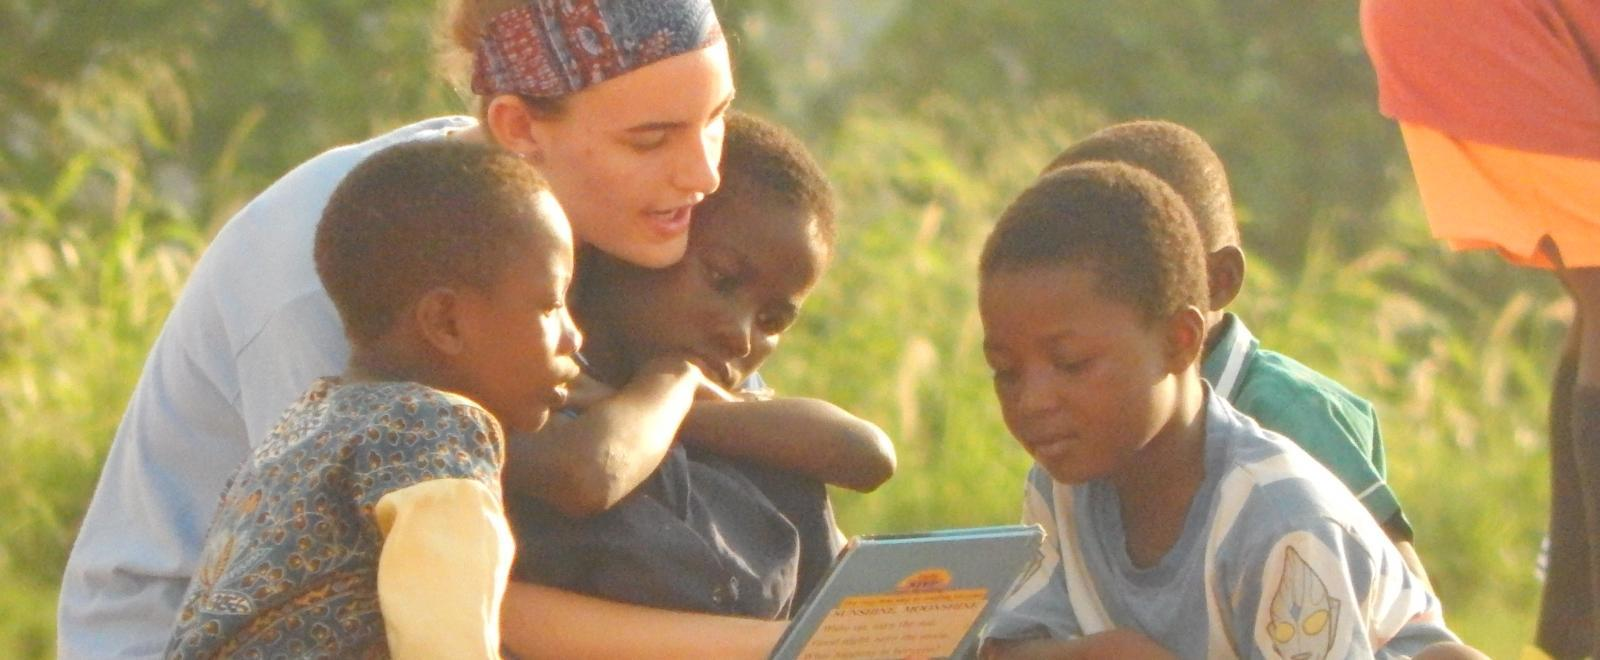 A volunteer with children in Ghana reads a book to a group of young students outdoors at her Childcare Project.